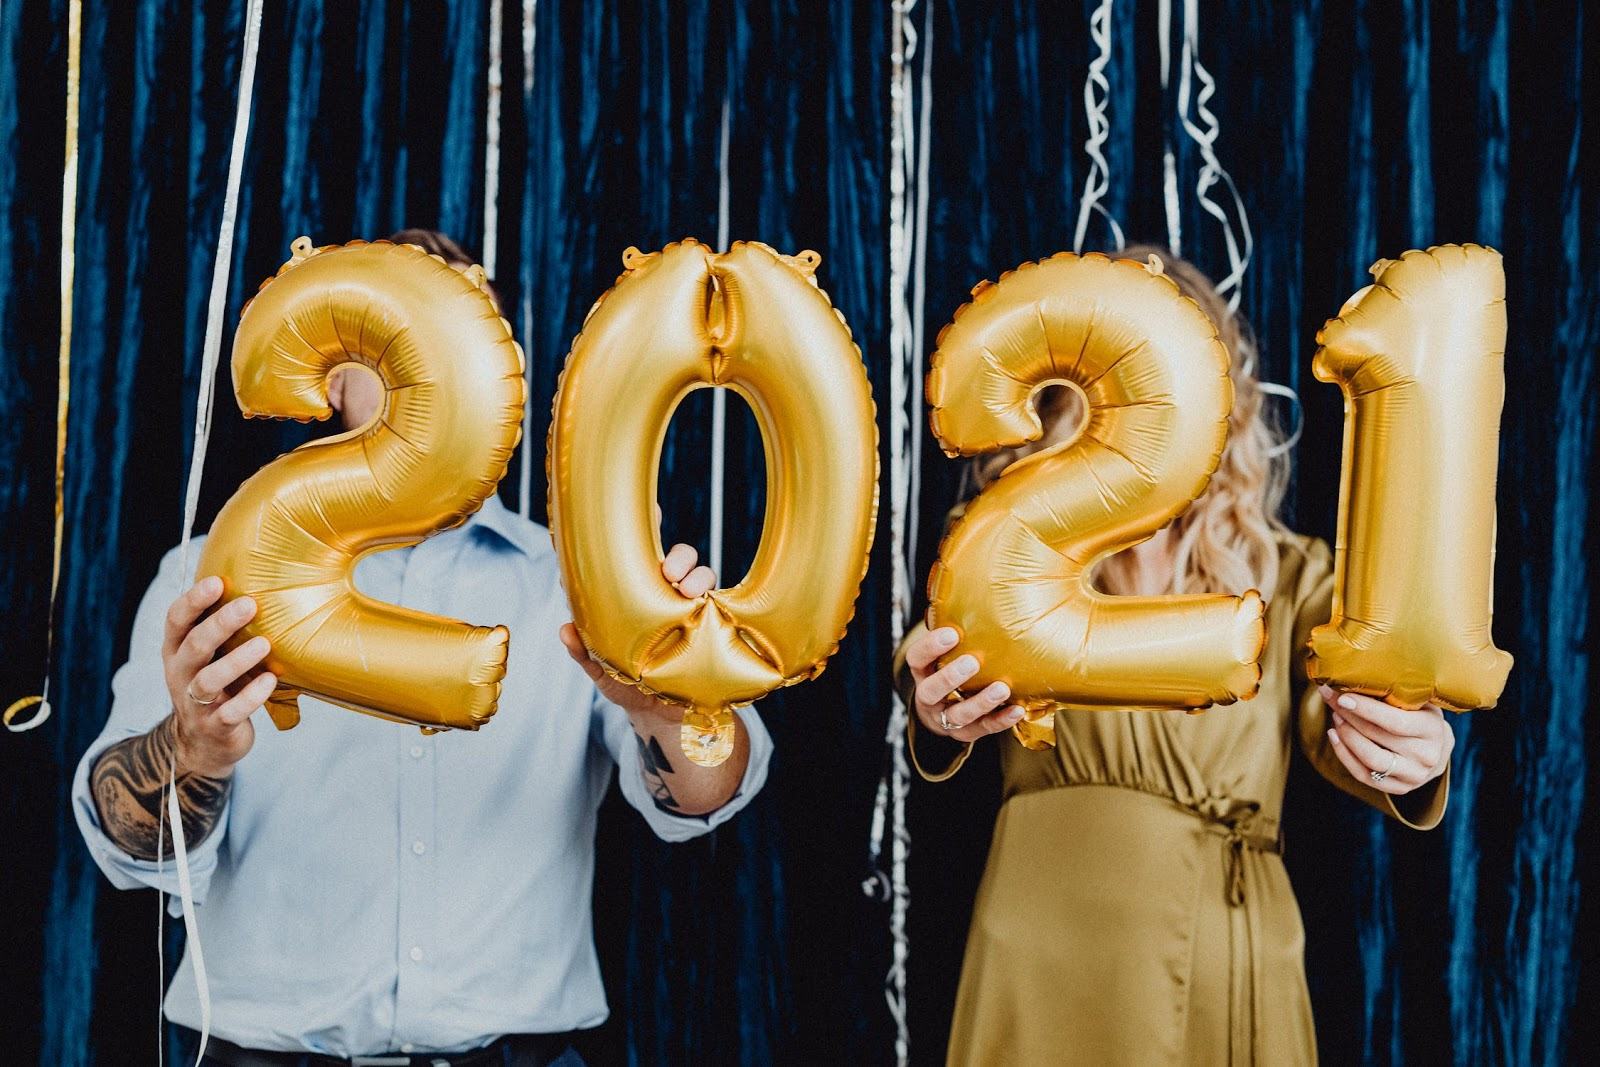 2 people hold 2021 balloons